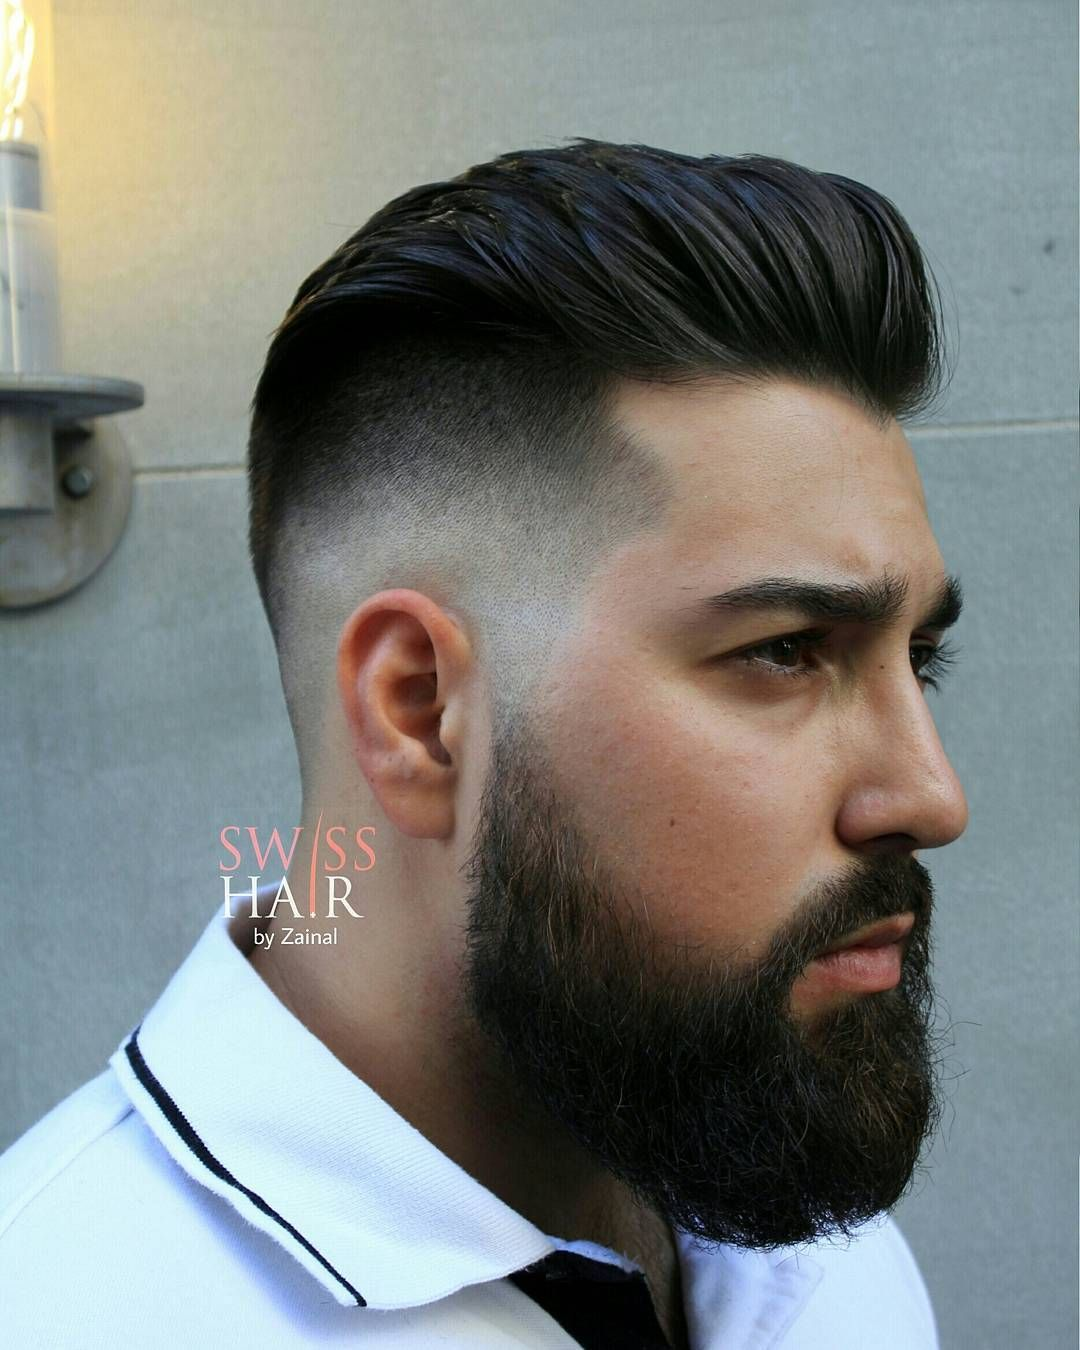 Hairstyles For Thick Hair Men Gorgeous 15 New Haircuts  Hairstyles For Men With Thick Hair  Pompadour